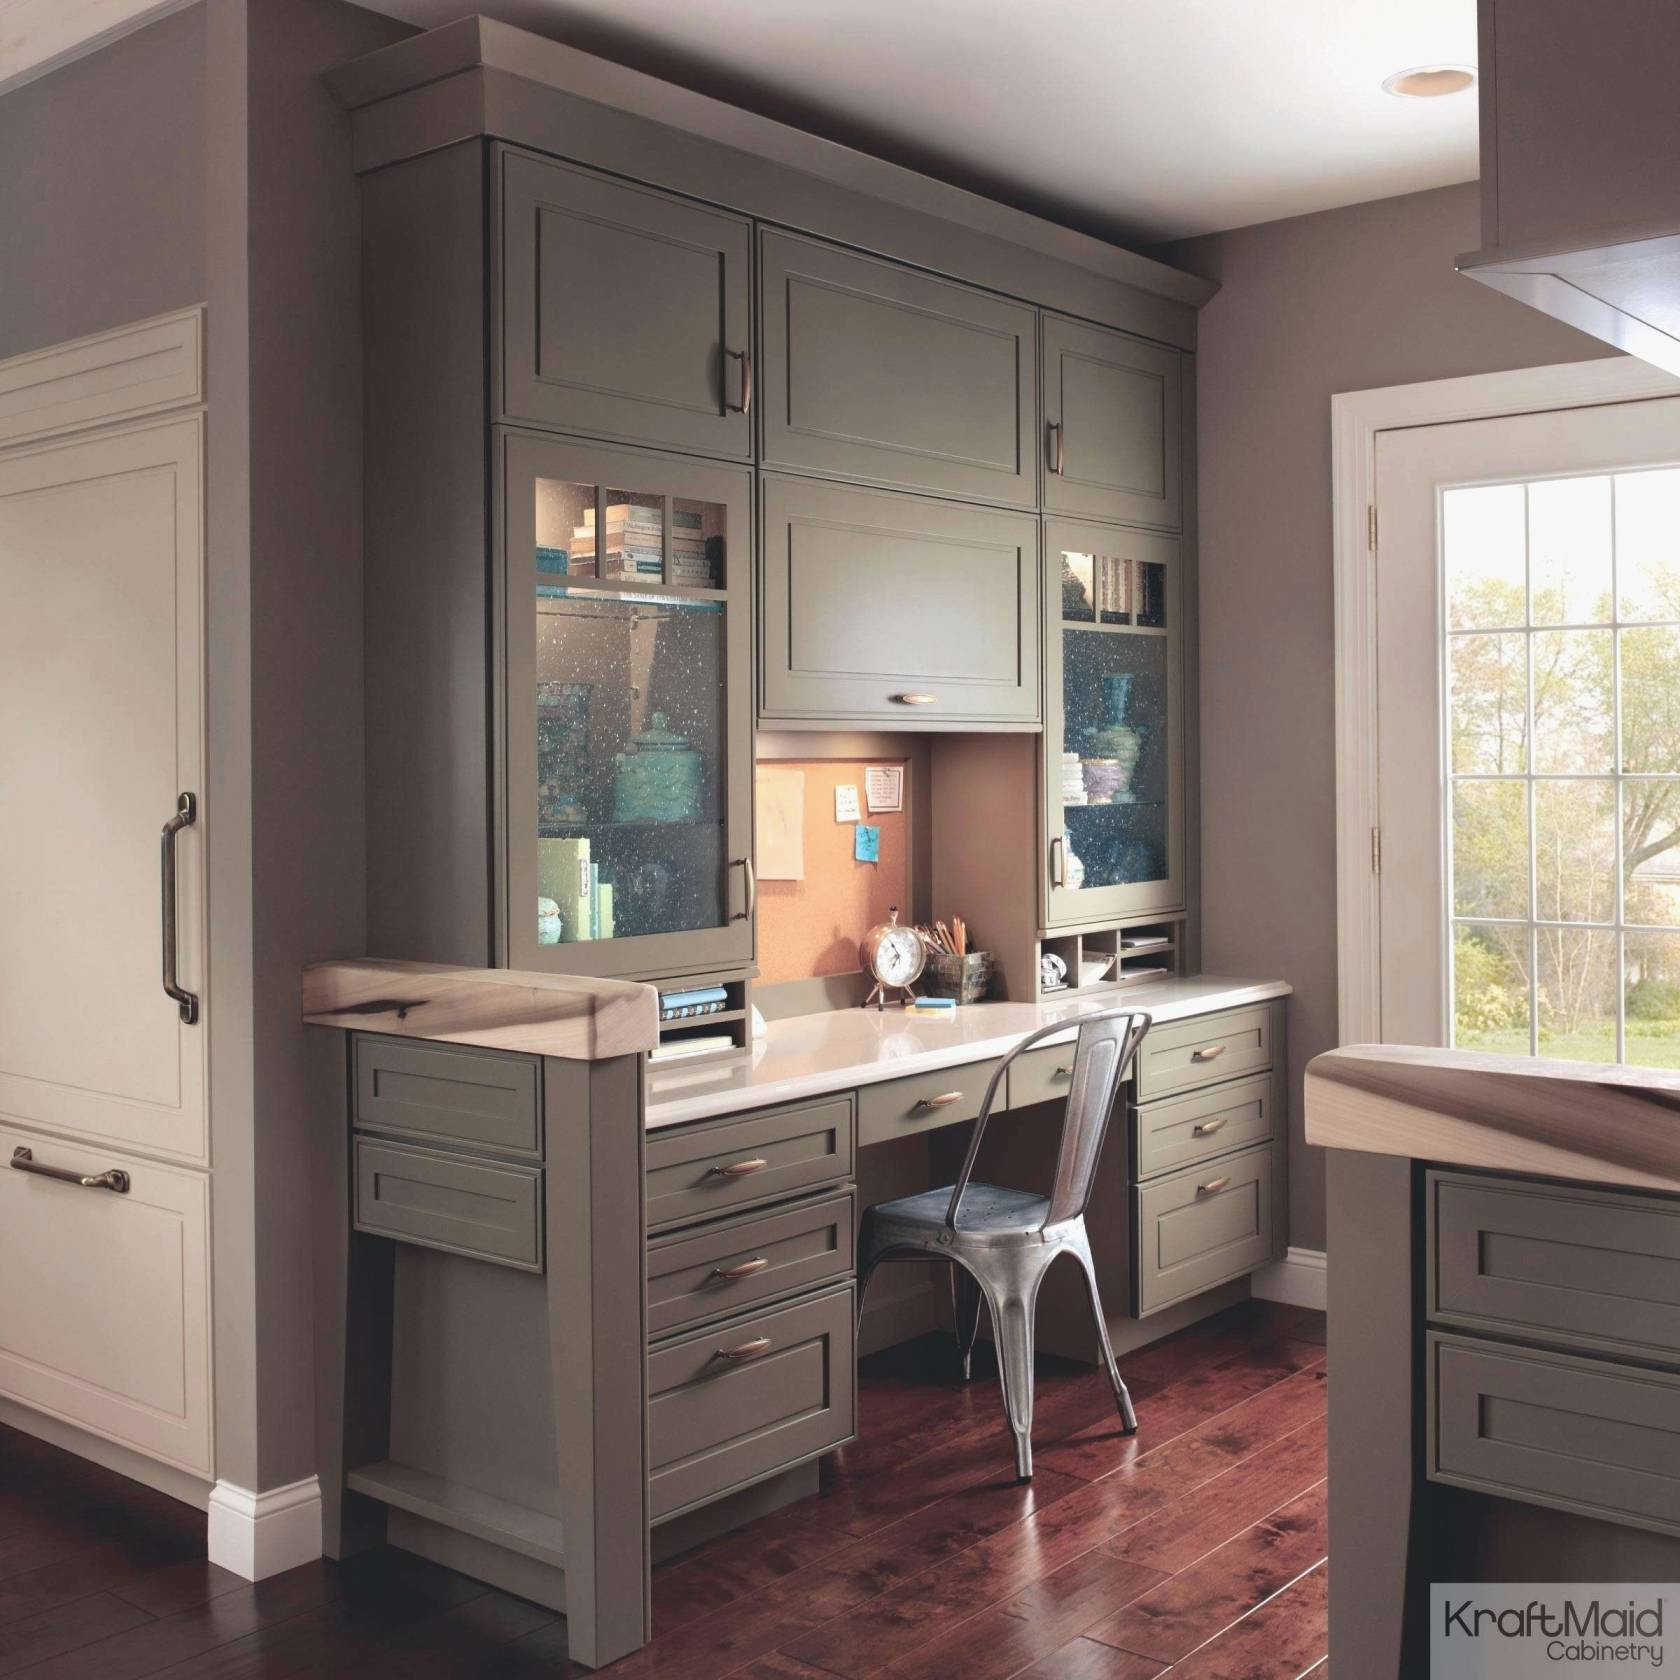 discount hardwood flooring toronto of 10 elegant kitchen cabinets sale toronto www princesofkingsroad regarding custom kitchen cabinets lovely kitchen cabinet 0d design ideas scheme kitchen cabinet design ideas s